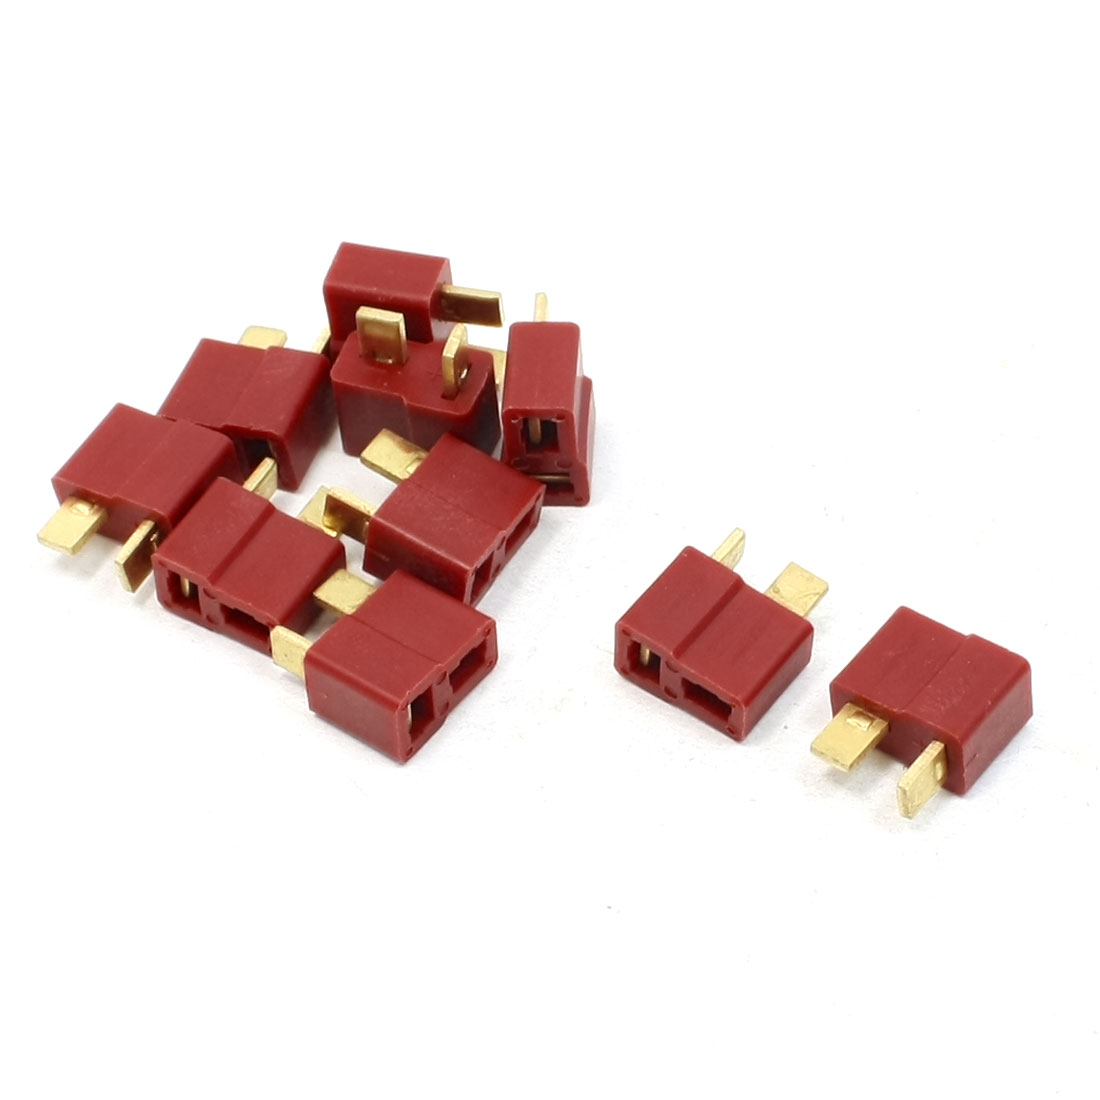 10 Pcs Anti-skid Female Plug T-Connector Y307 for RC Vehicle Battery